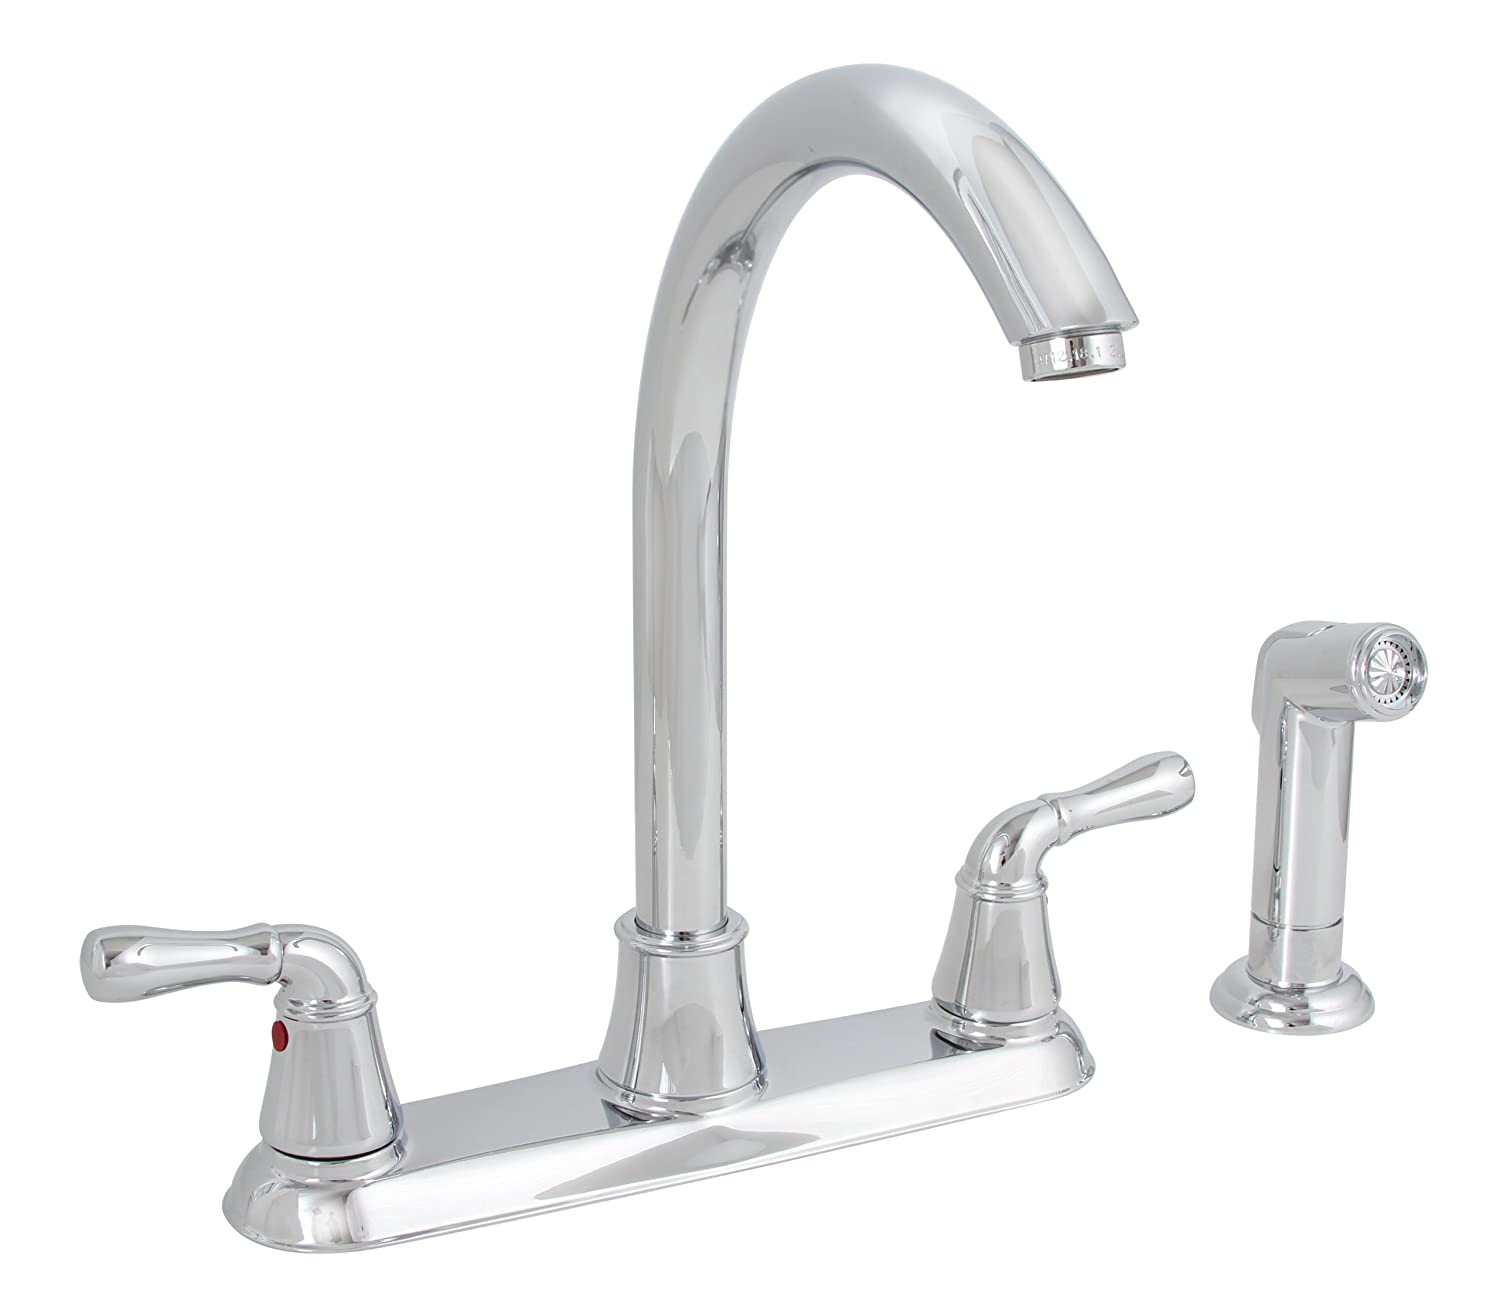 Premier 120047LF Sanibel Lead Free Two Handle Kitchen Faucet With Matching  Spray, Brushed Nickel   Touch On Kitchen Sink Faucets   Amazon.com